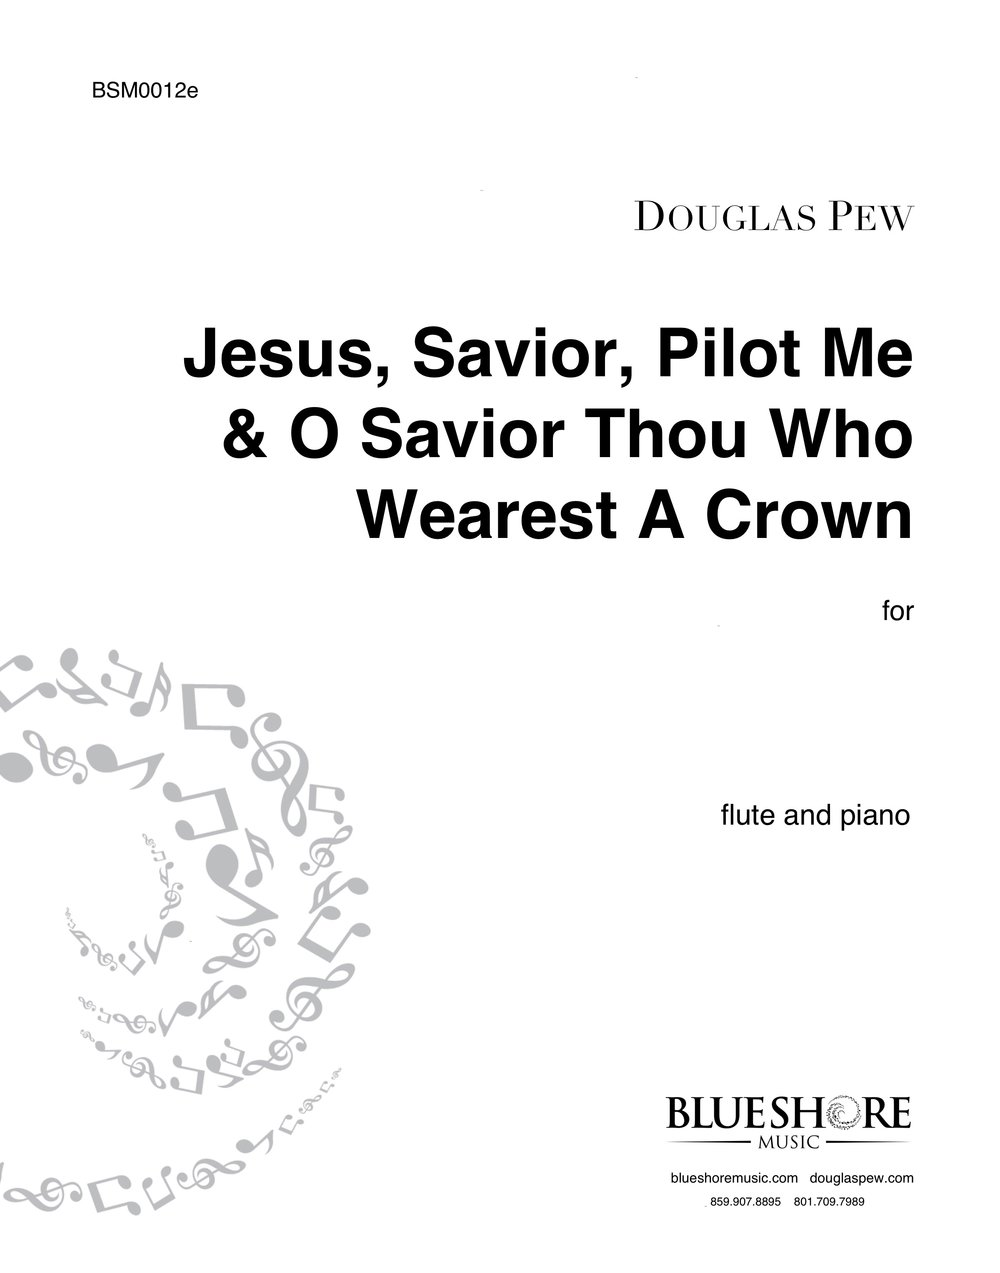 Jesus, Savior, Pilot Me and O Savior Thou Who Wearest A Crown